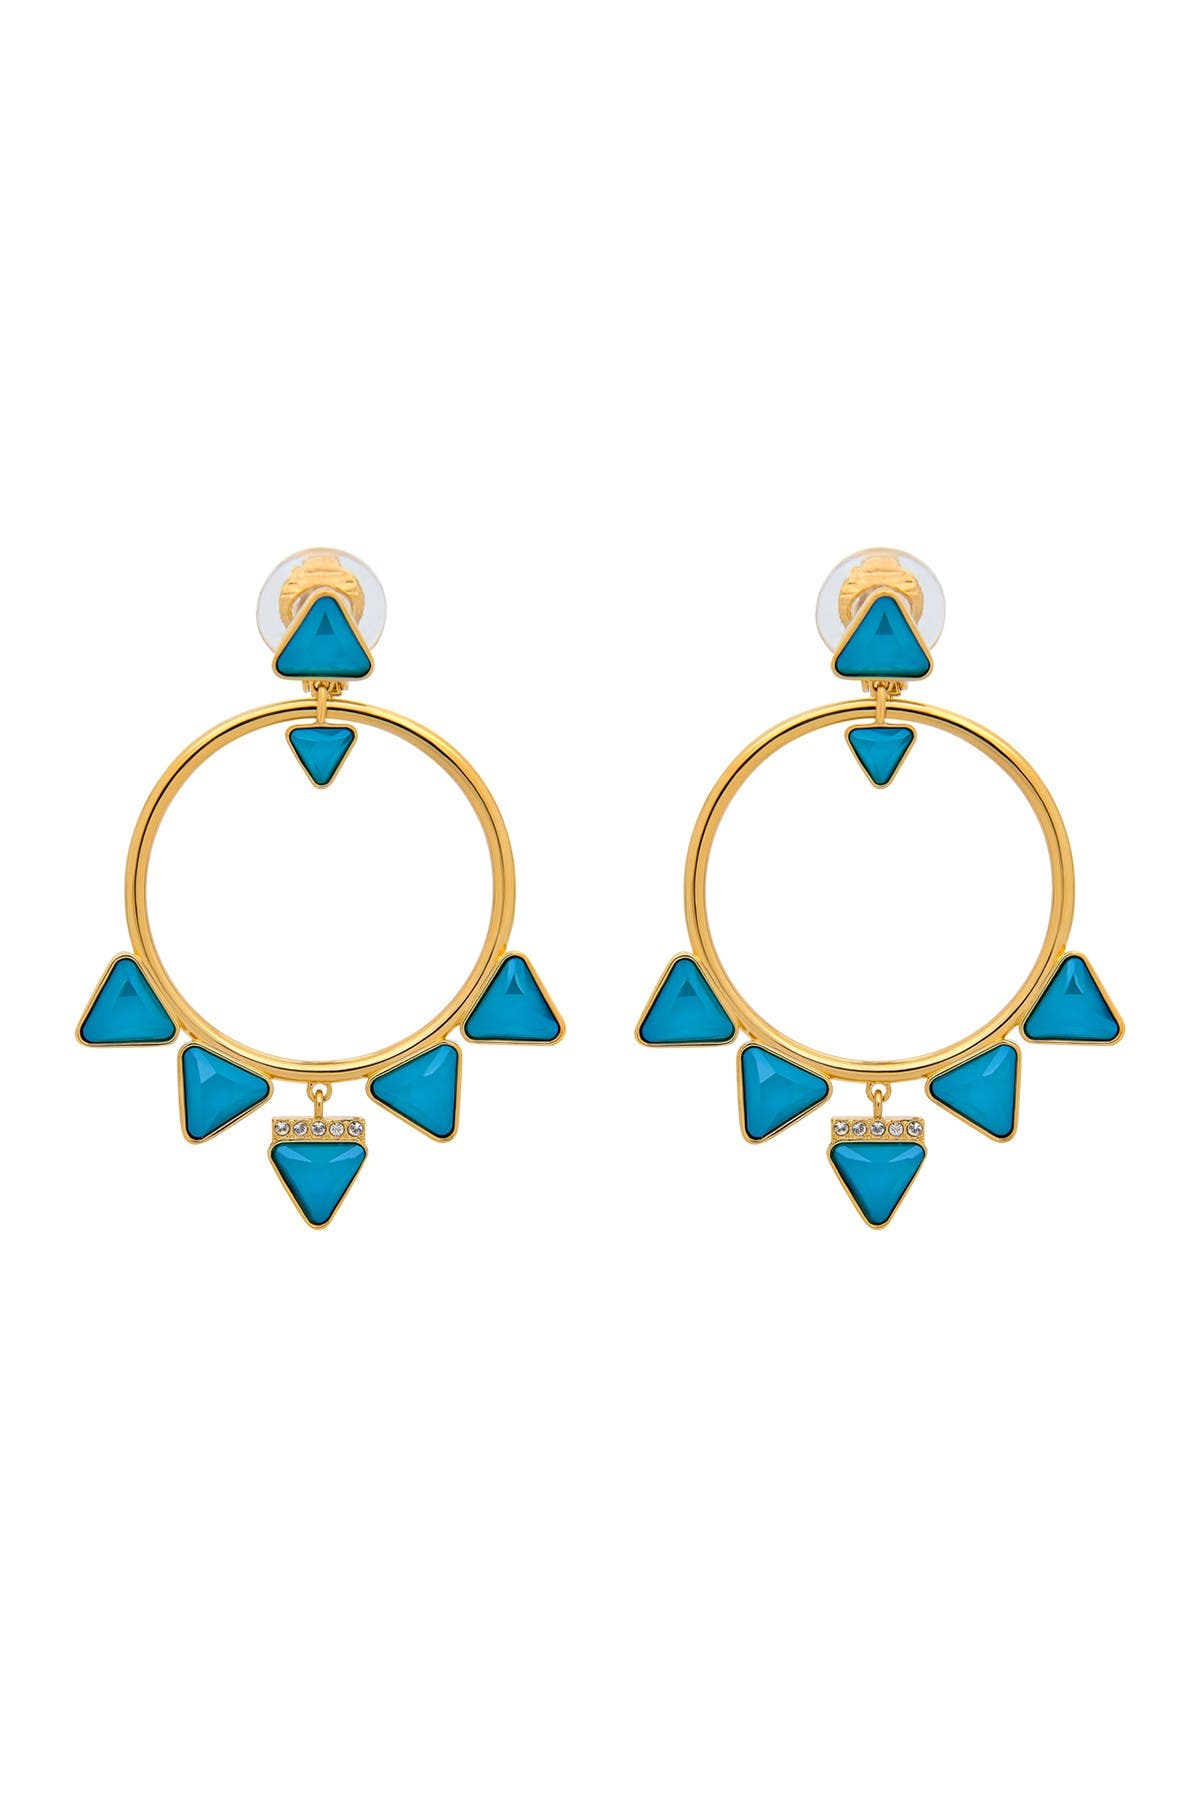 Image of Swarovski Labyrinth 23K Yellow Gold Plated Teal Swarovski Crystal Clip-On Hoop Earrings